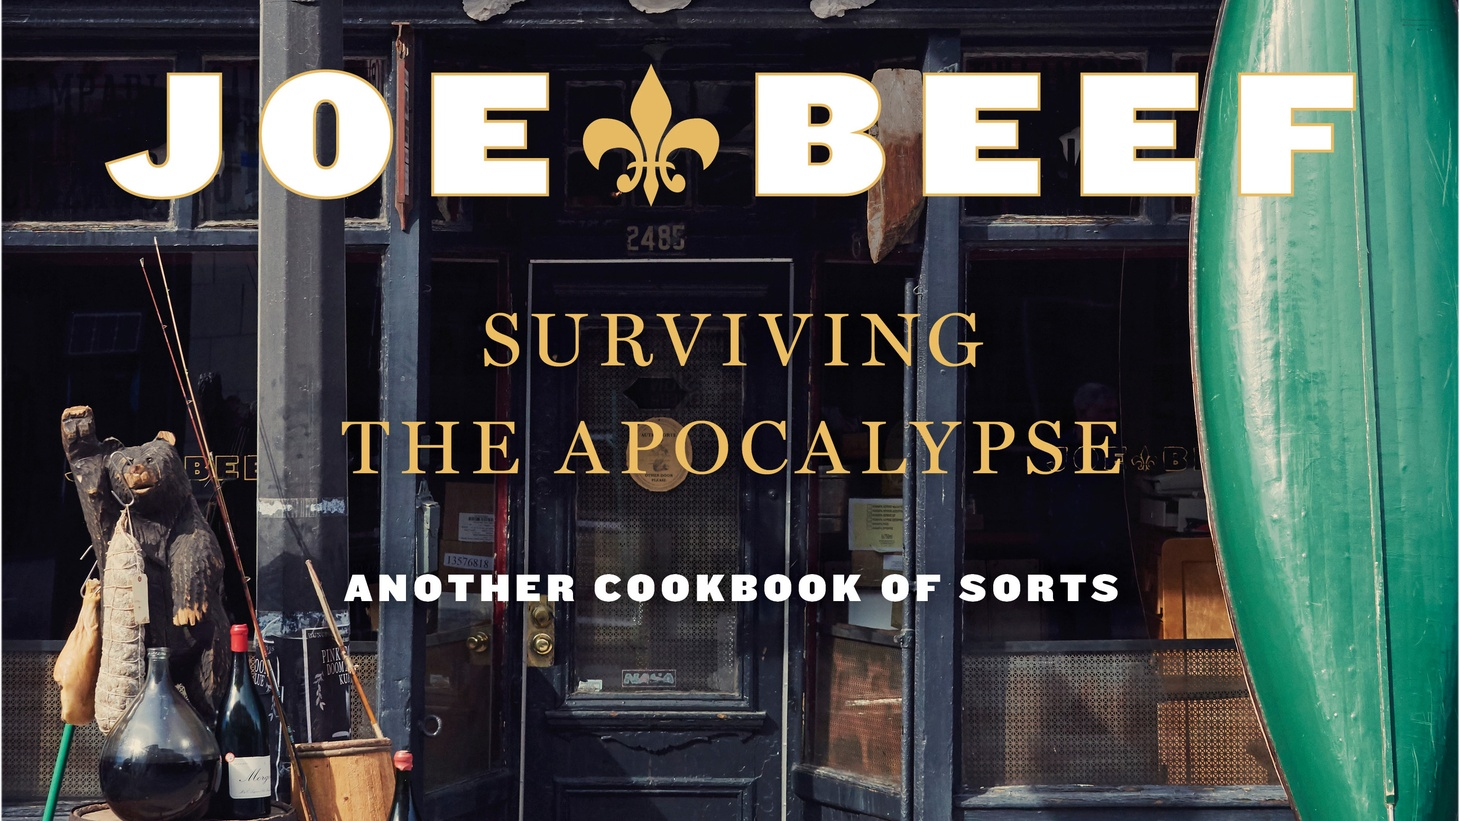 """""""Joe Beef: Surviving the Apocalypse. Another Cookbook of Sorts"""" by Frederic Morin, David McMillan, and Meredith Erickson."""